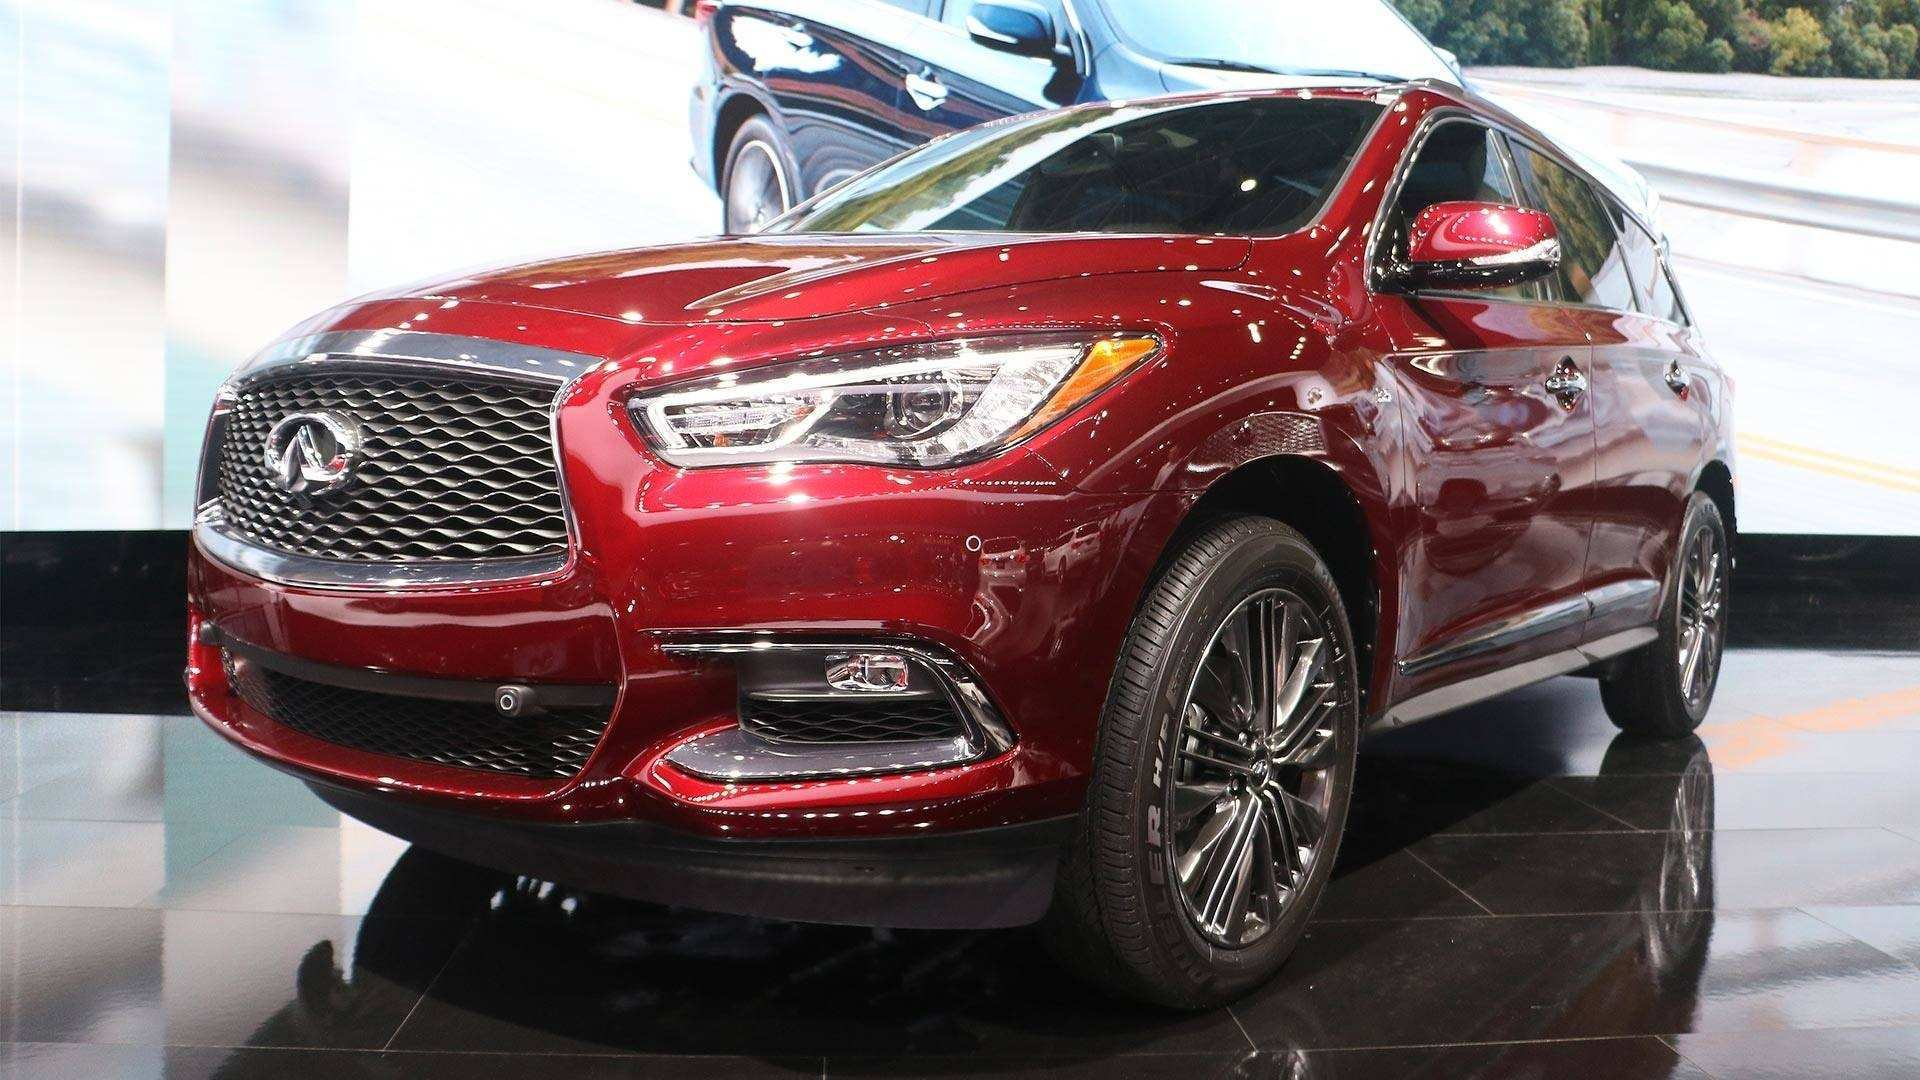 96 The Best Infiniti 2019 Qx60 First Drive Specs with Best Infiniti 2019 Qx60 First Drive